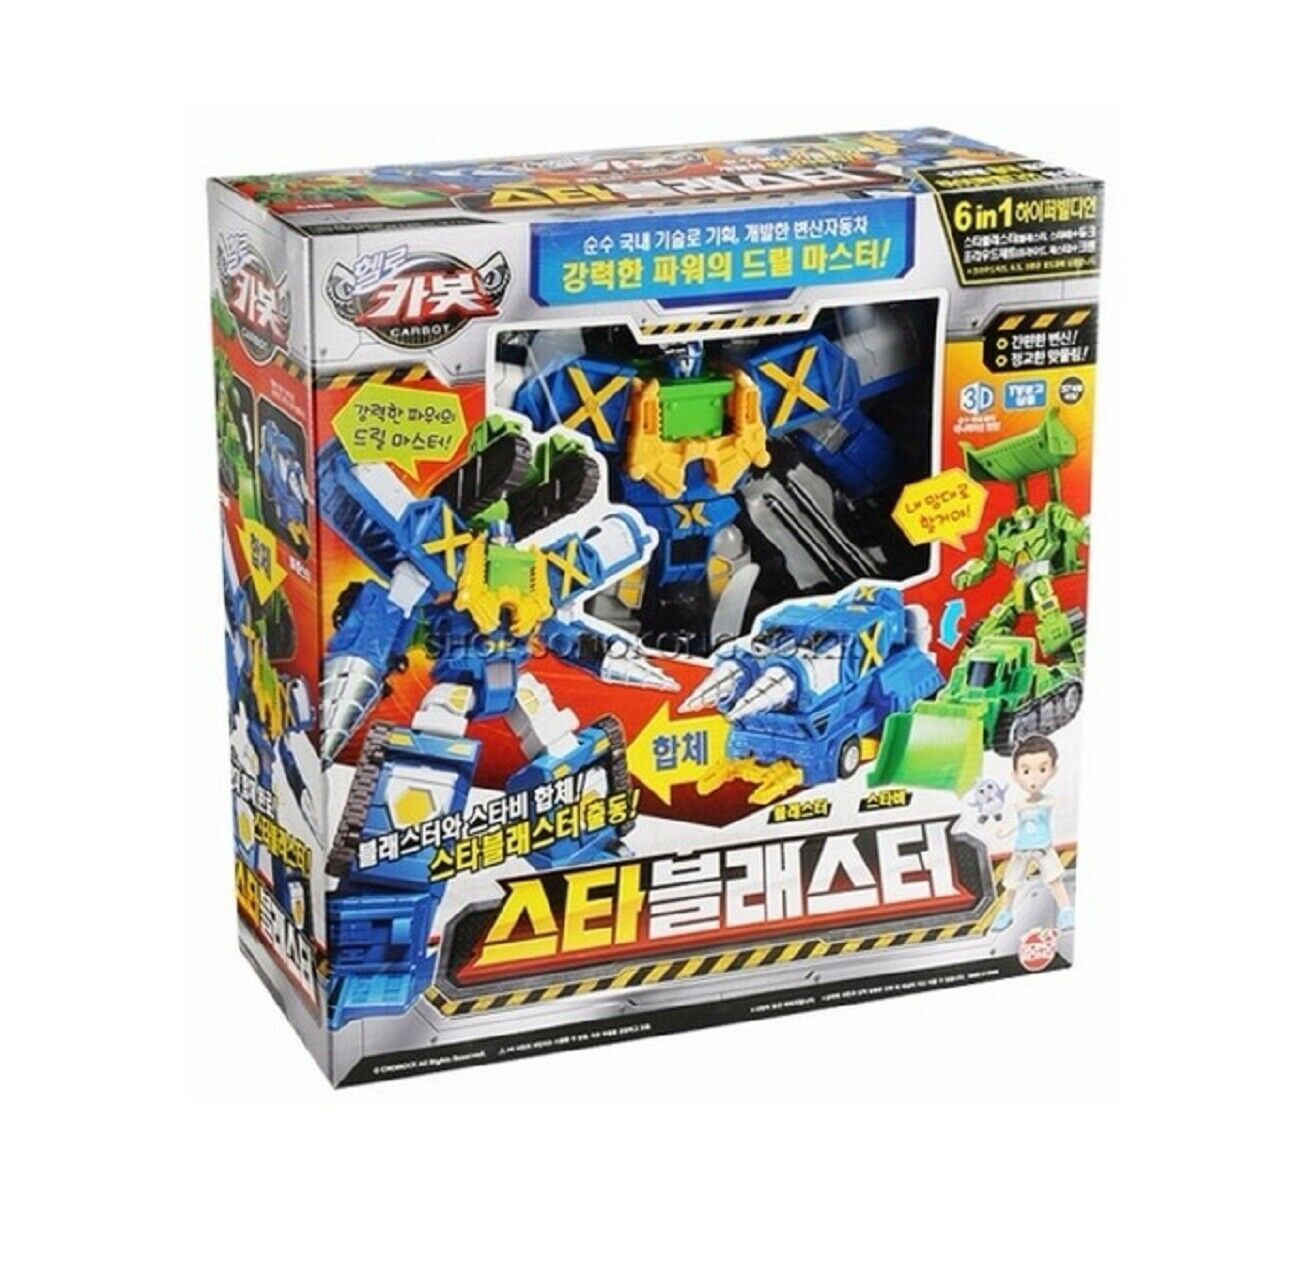 Hello Carbot Star Blaster Transformation Action Figure Toy